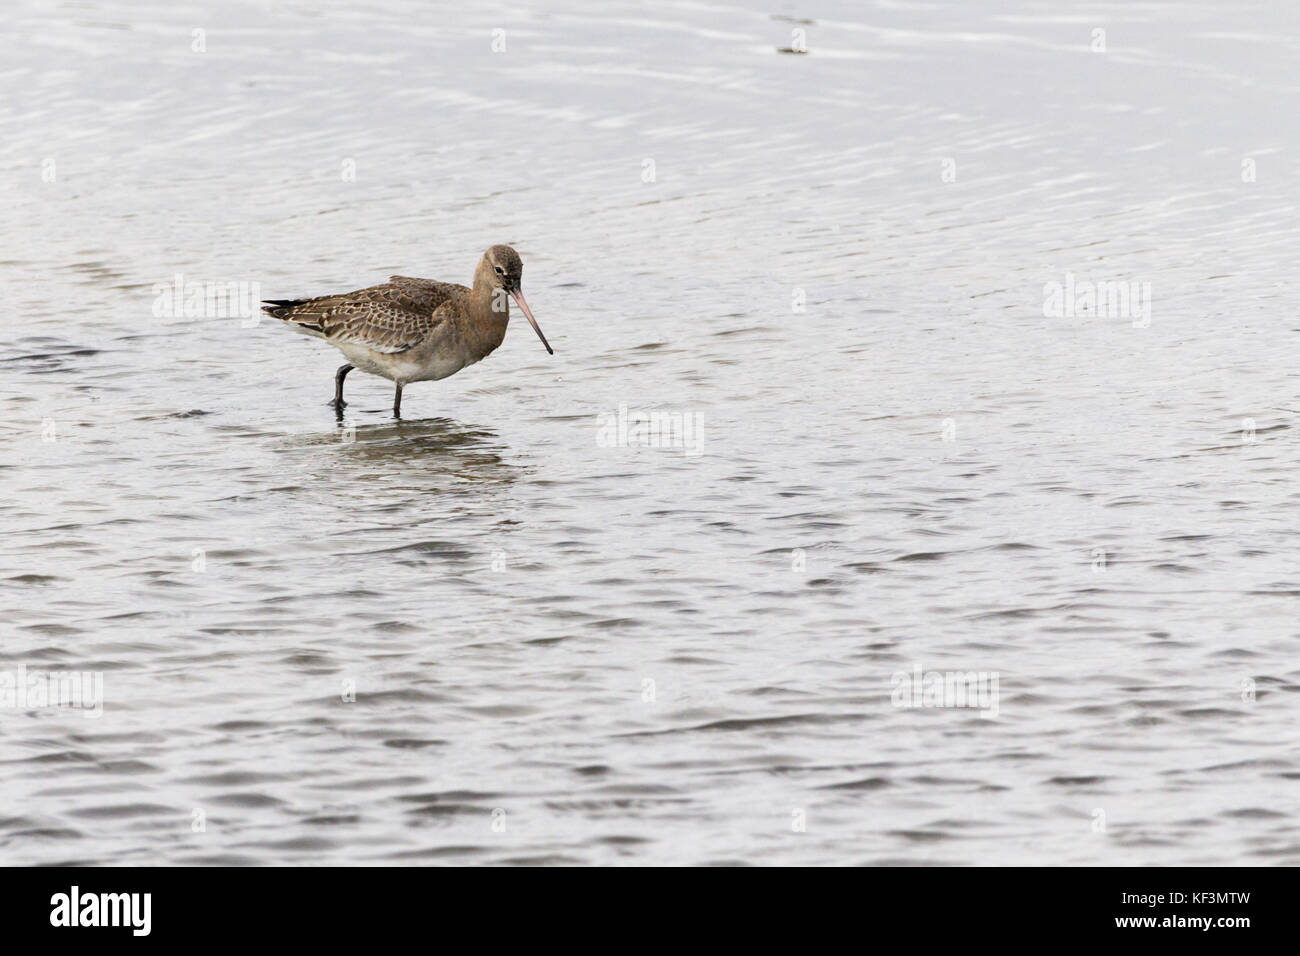 Bar tailed godwit (Limosa lapponica) wading in shallow water probing for marine worms and molluscs at Pagham harbour - Stock Image